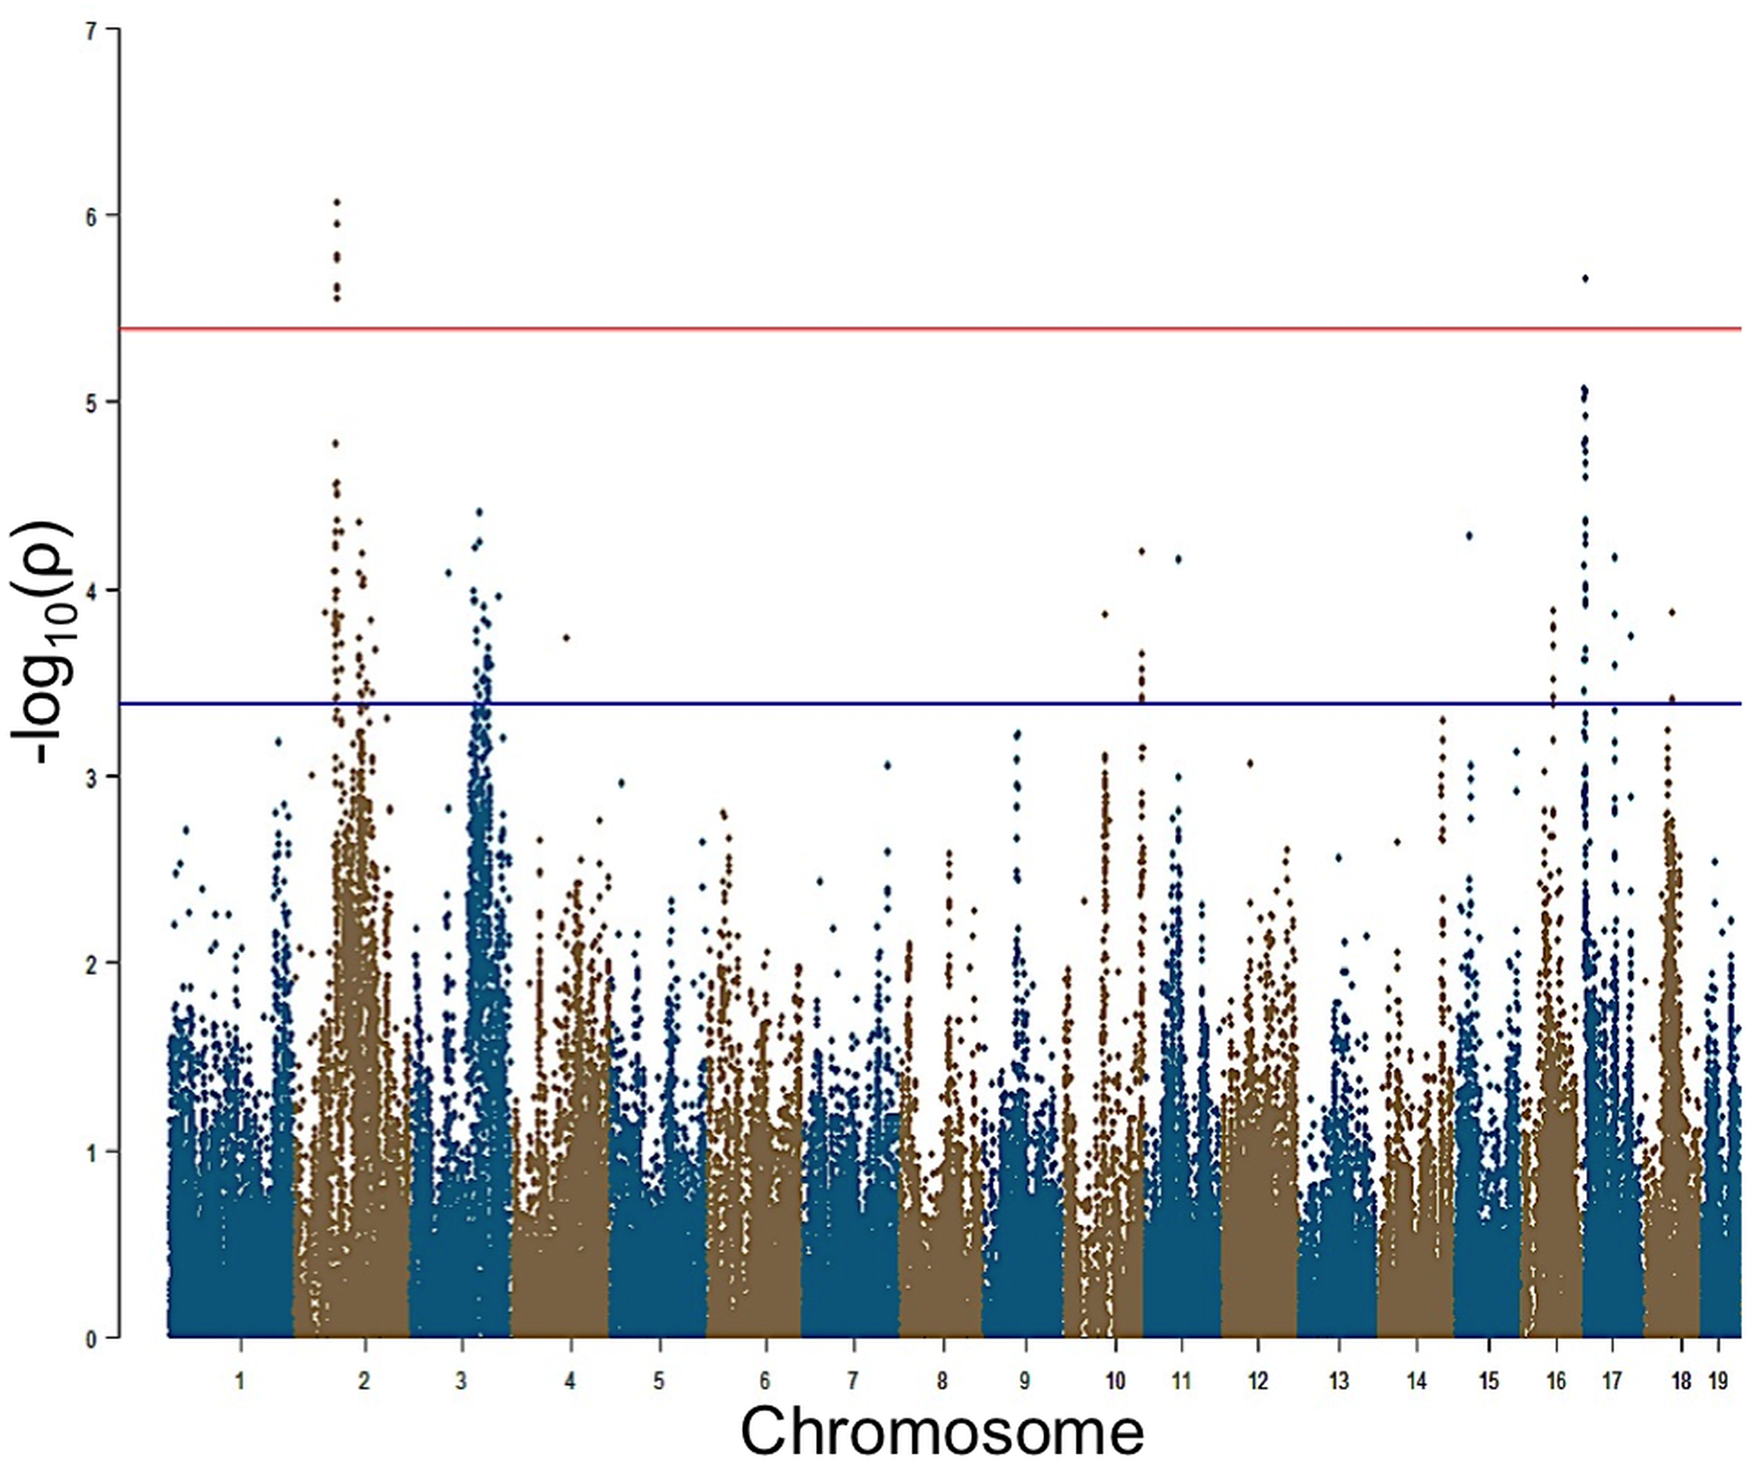 GWAS results for post-noise exposure thresholds in the HMDP.